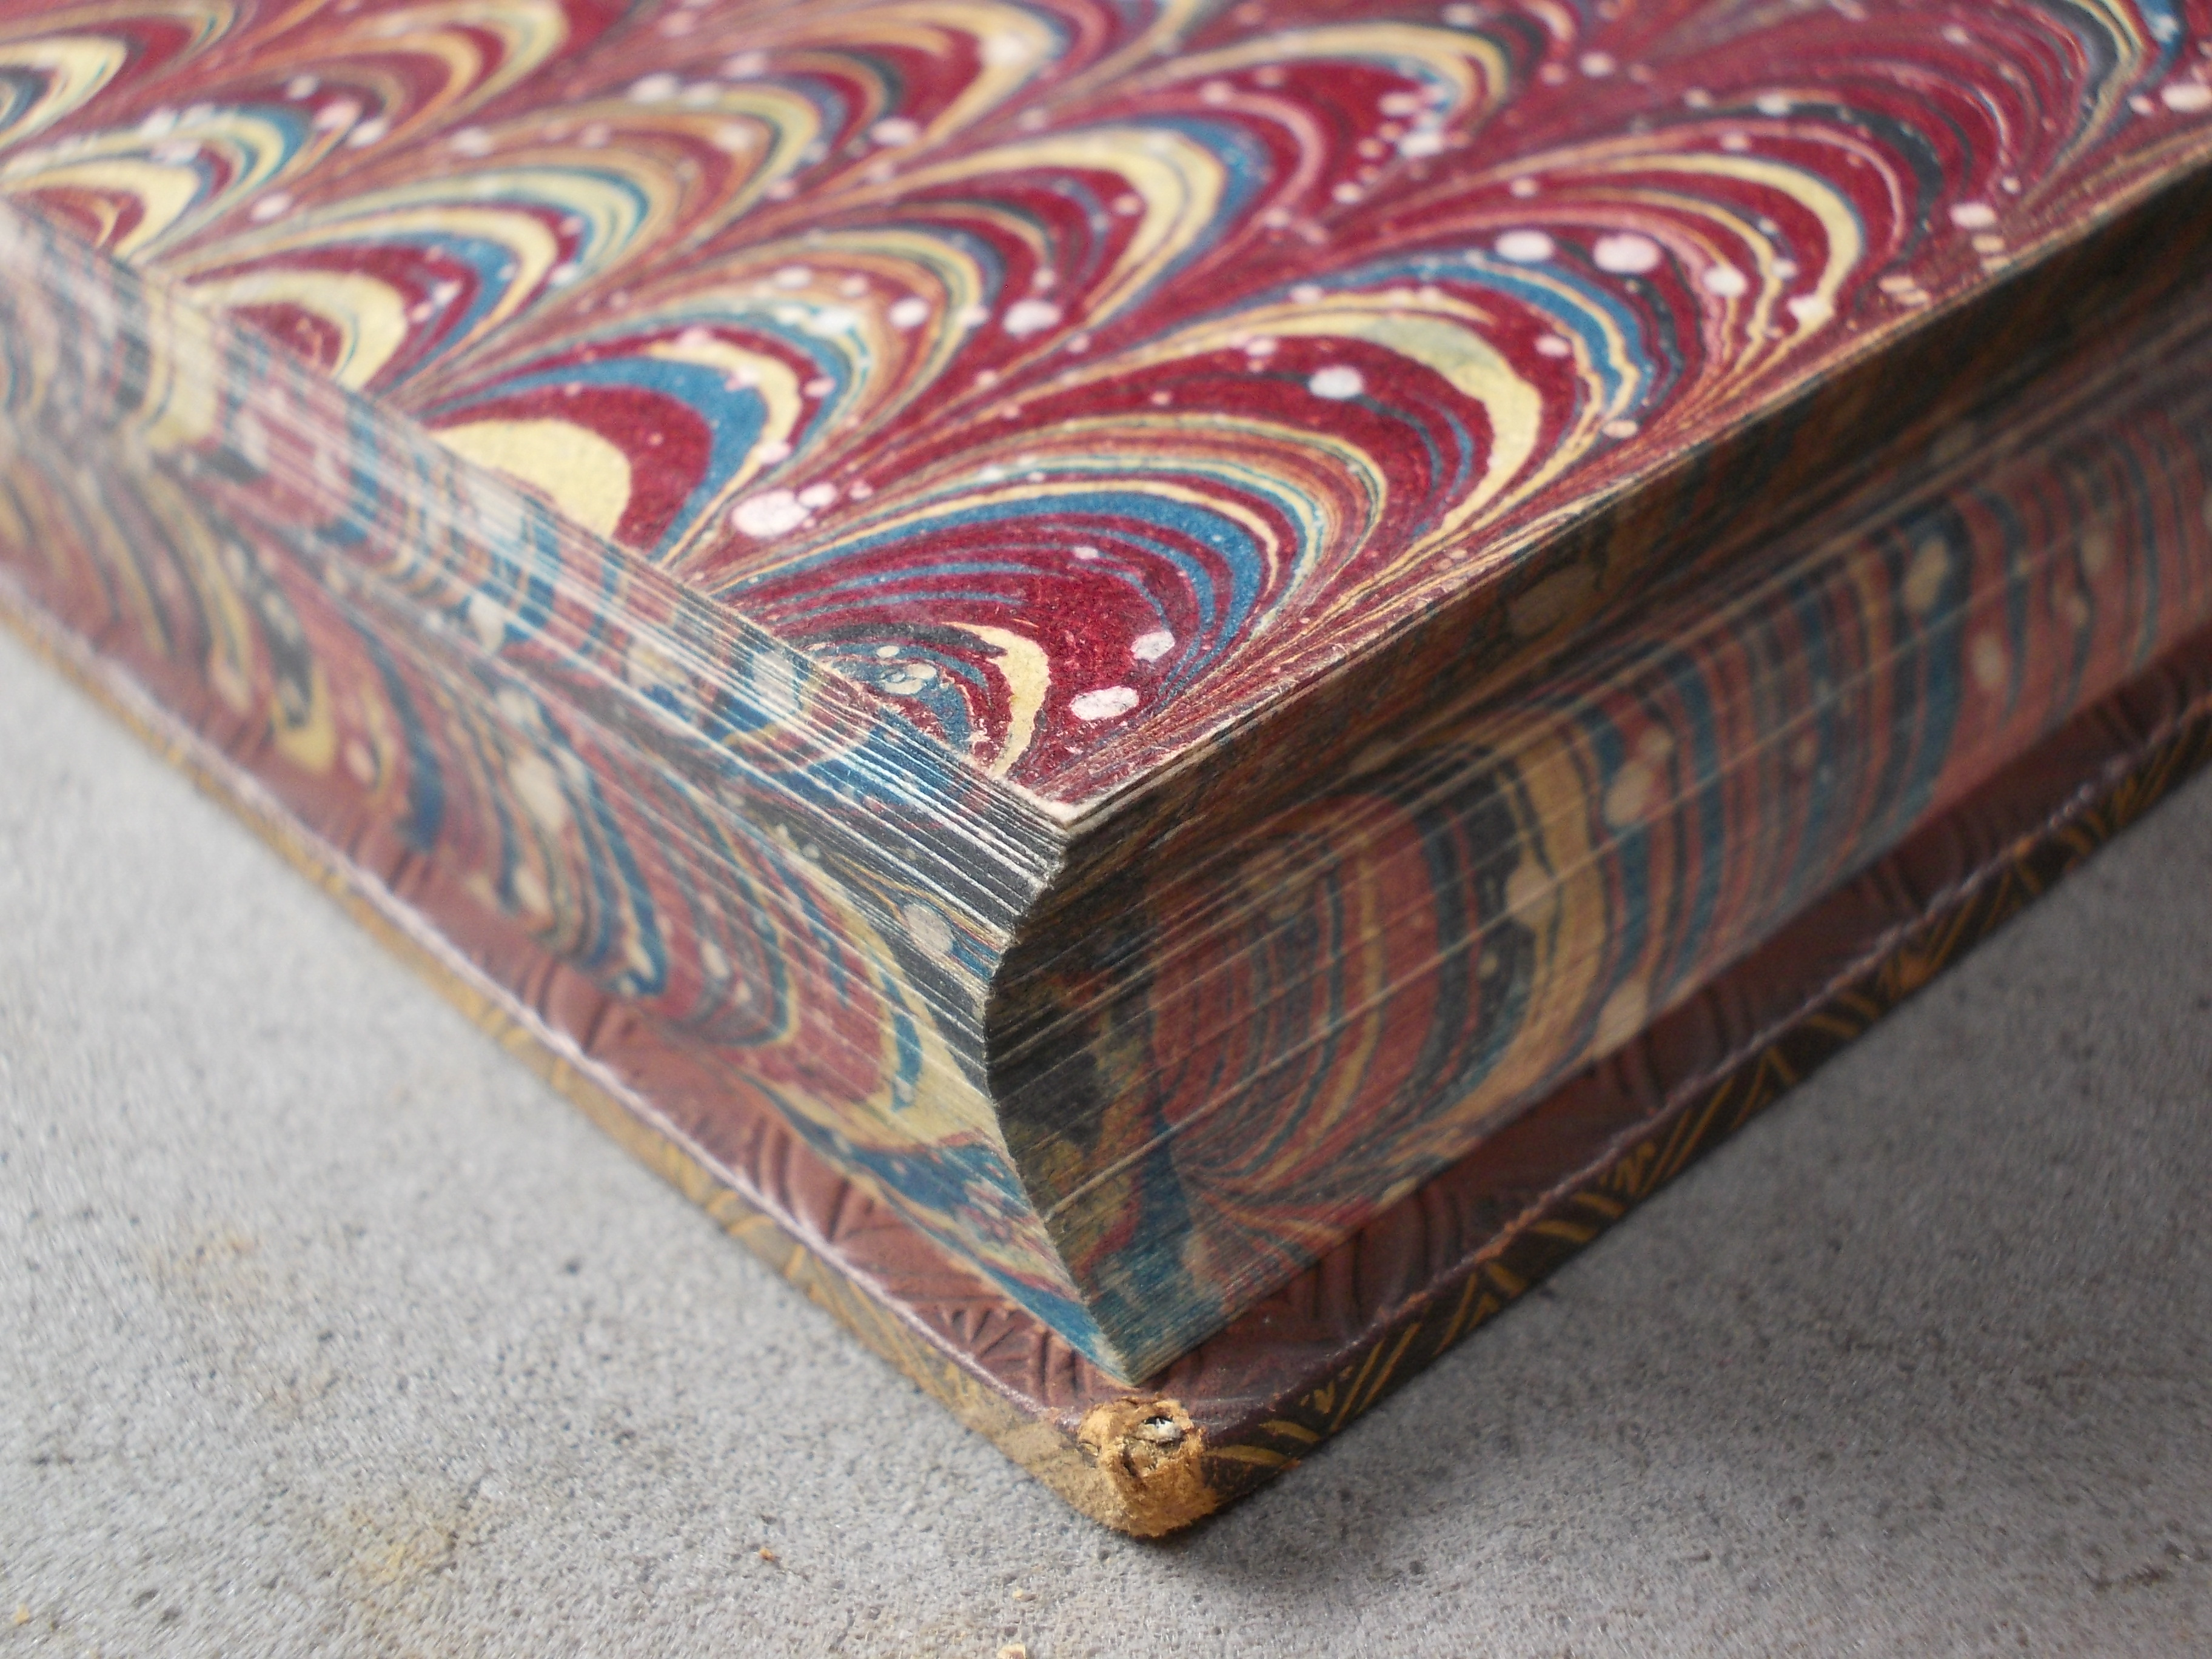 A differently combed pattern on the endpapers and edges of a book.